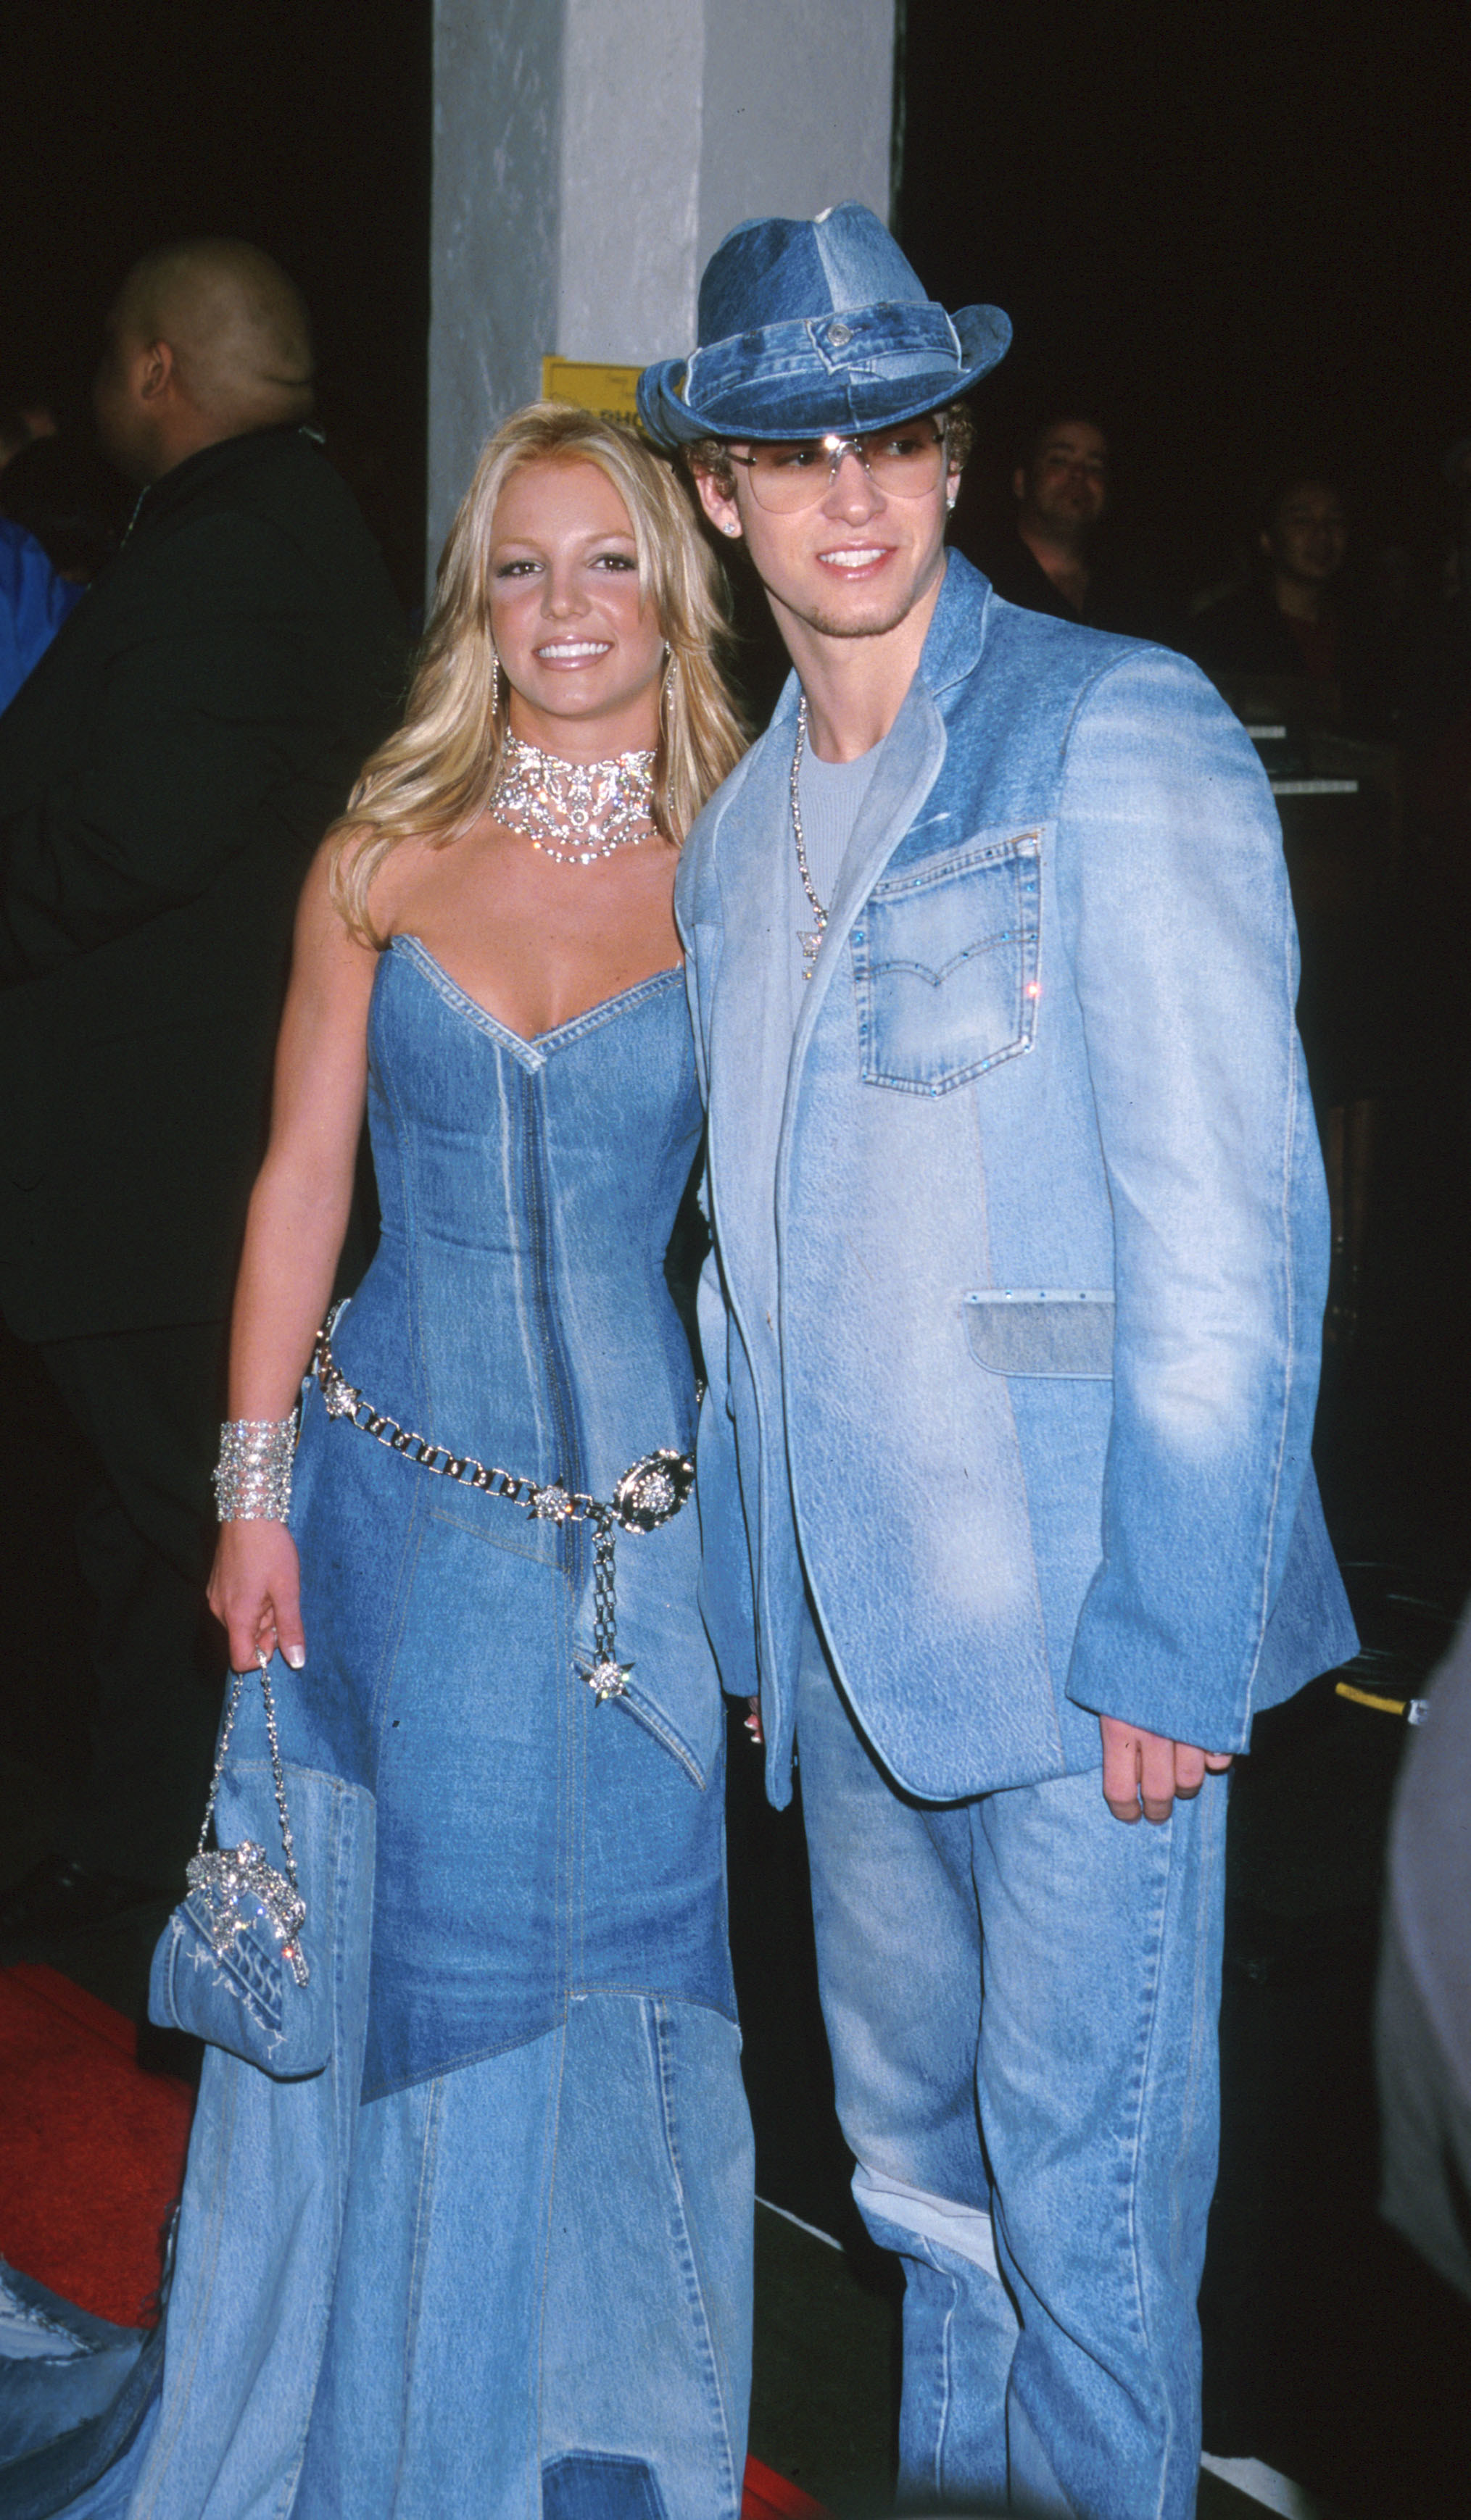 Spears and Timberlake wearing head-to-toe denim outfits